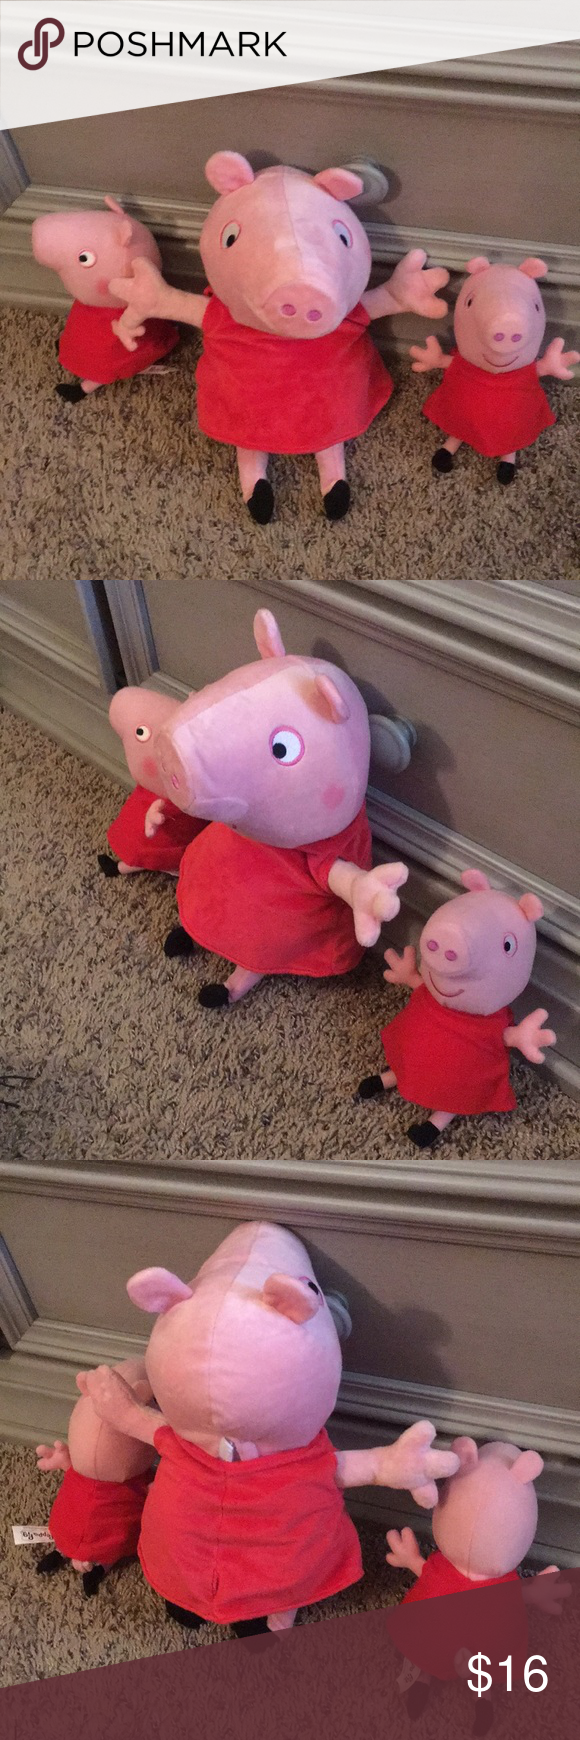 Set Of 3 Peppa Pig Toys 2 Stuffed One Moves Set Of 3 Peppa Pig Toys 2 Stuffed One Moves 2 Small Ones Are Plush Toys Larg Peppa Pig Toys Toy 2 Peppa Pig [ 1740 x 580 Pixel ]